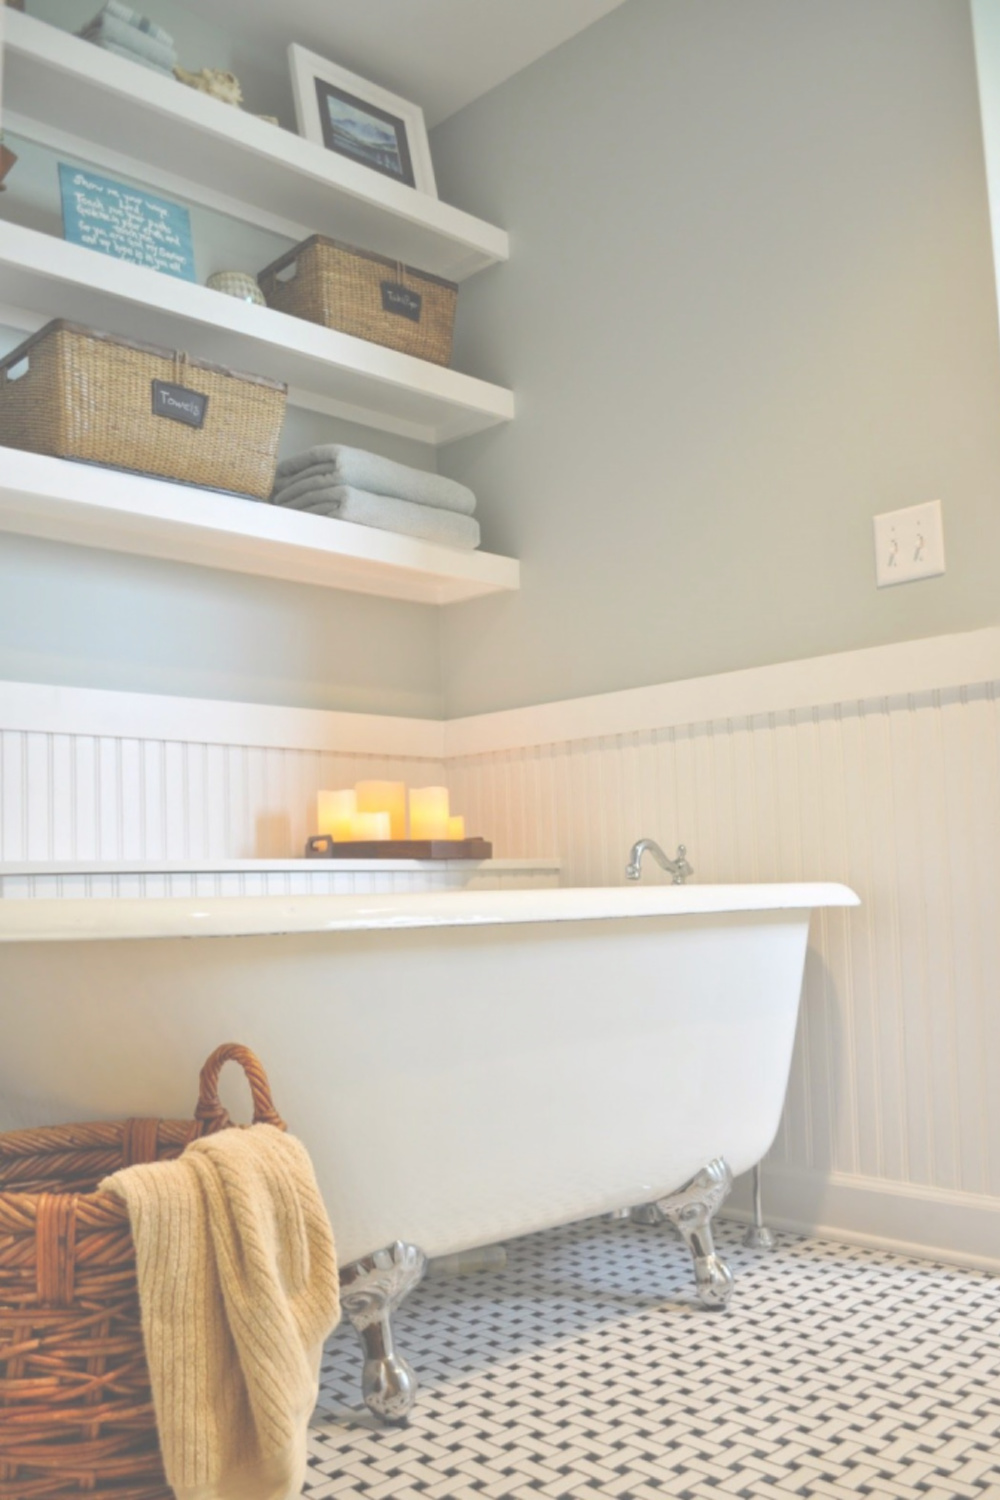 Beautiful pale blue walls in a bathroom with clawfoot tub - paint color is Quiet Moments by Benjamin Moore. #quietmoments #benjaminmoorequietmoments #paleblue